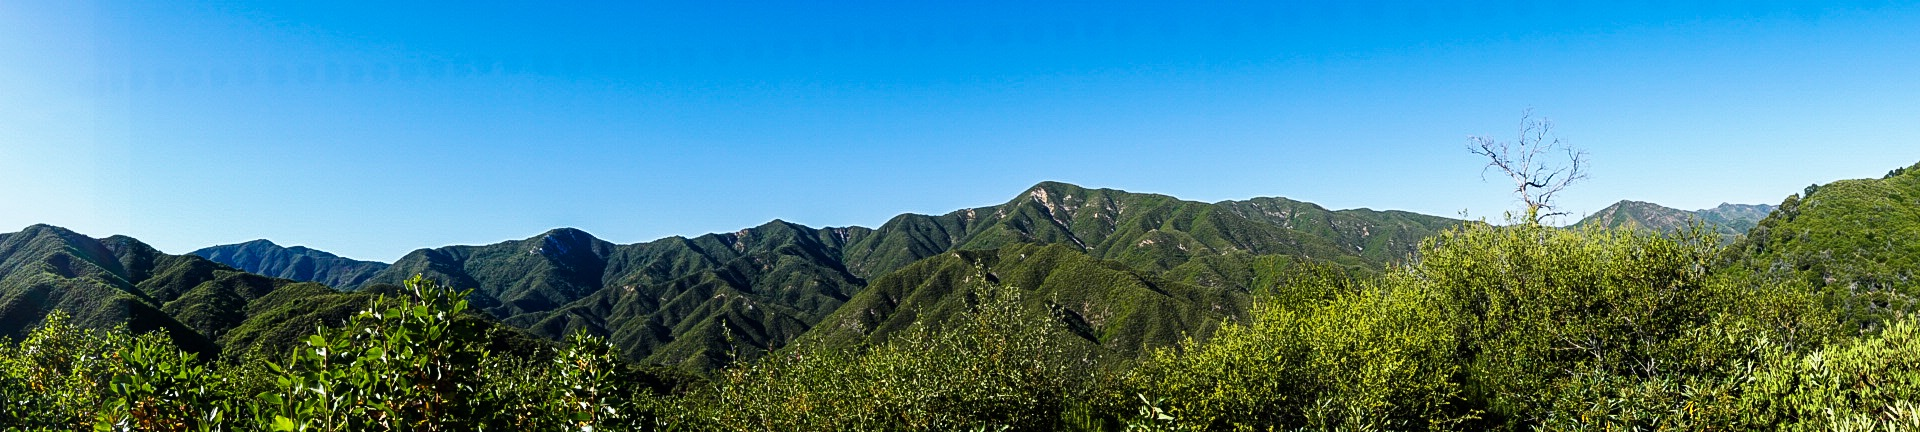 Views pulled over on Nacimiento-Fergusson Road